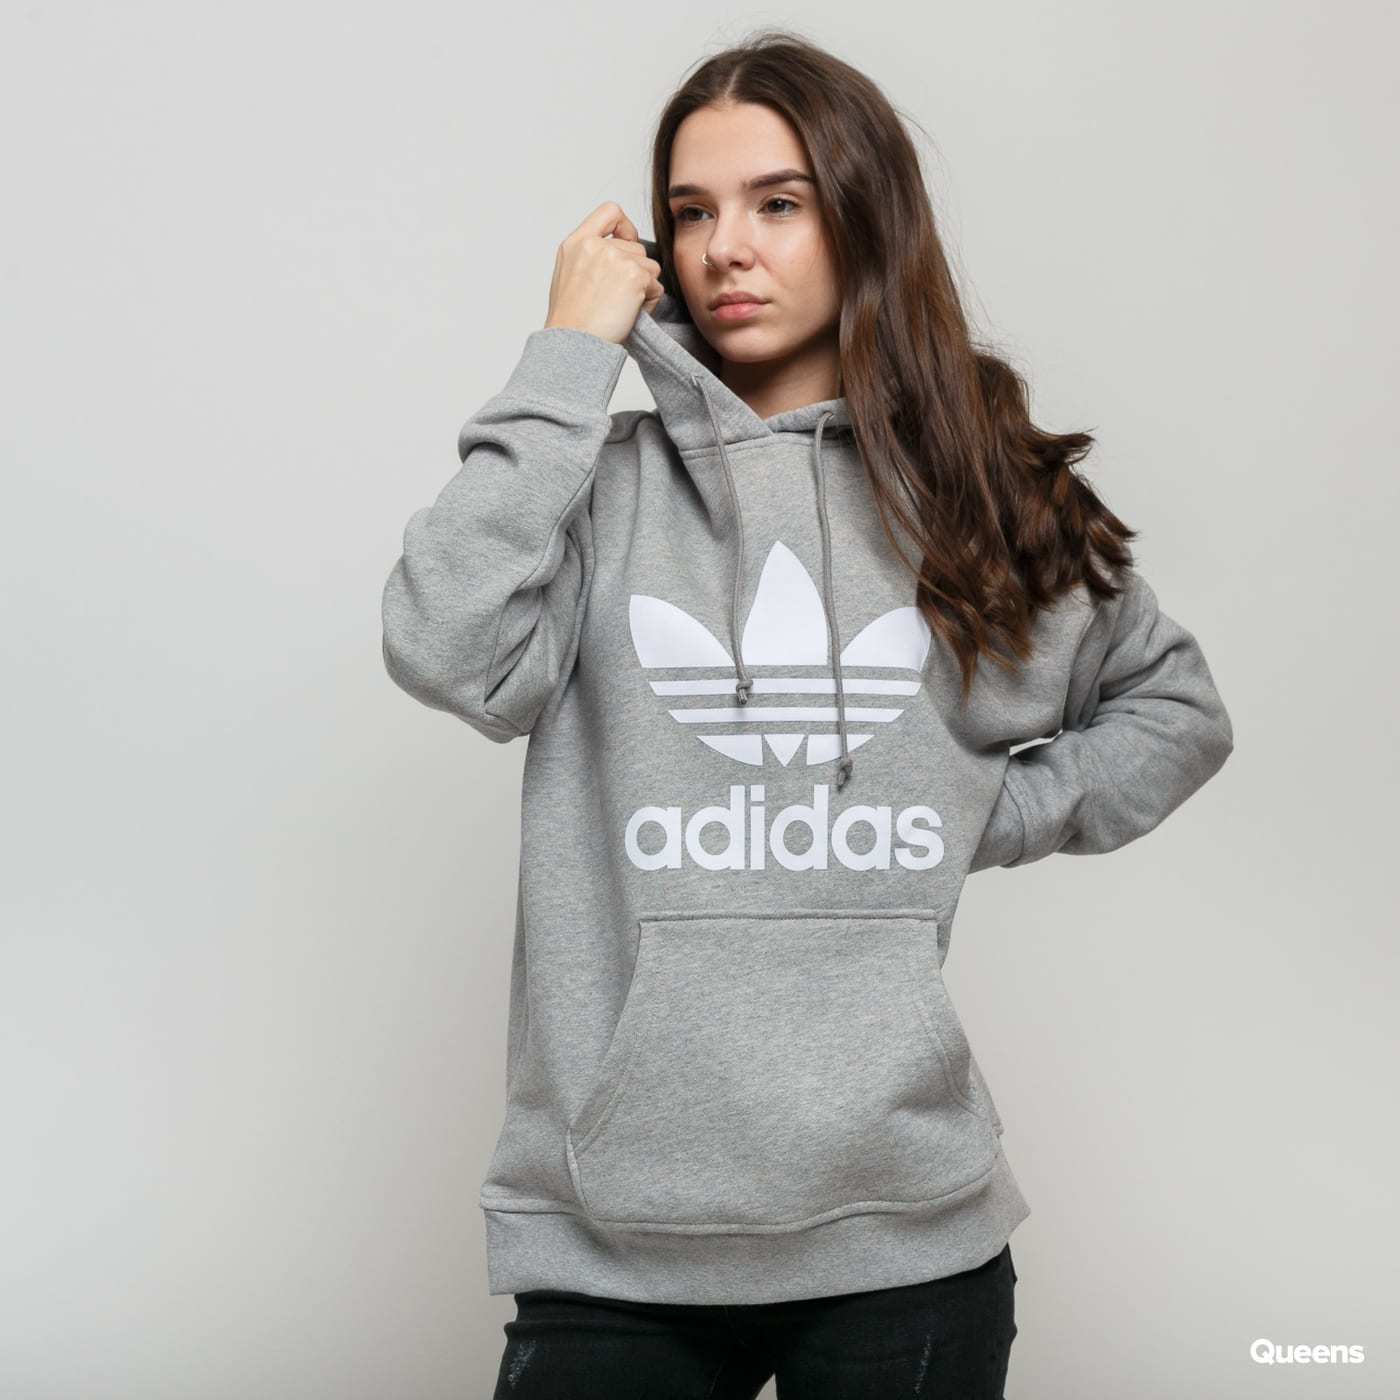 adidas trefoil sweat-shirt